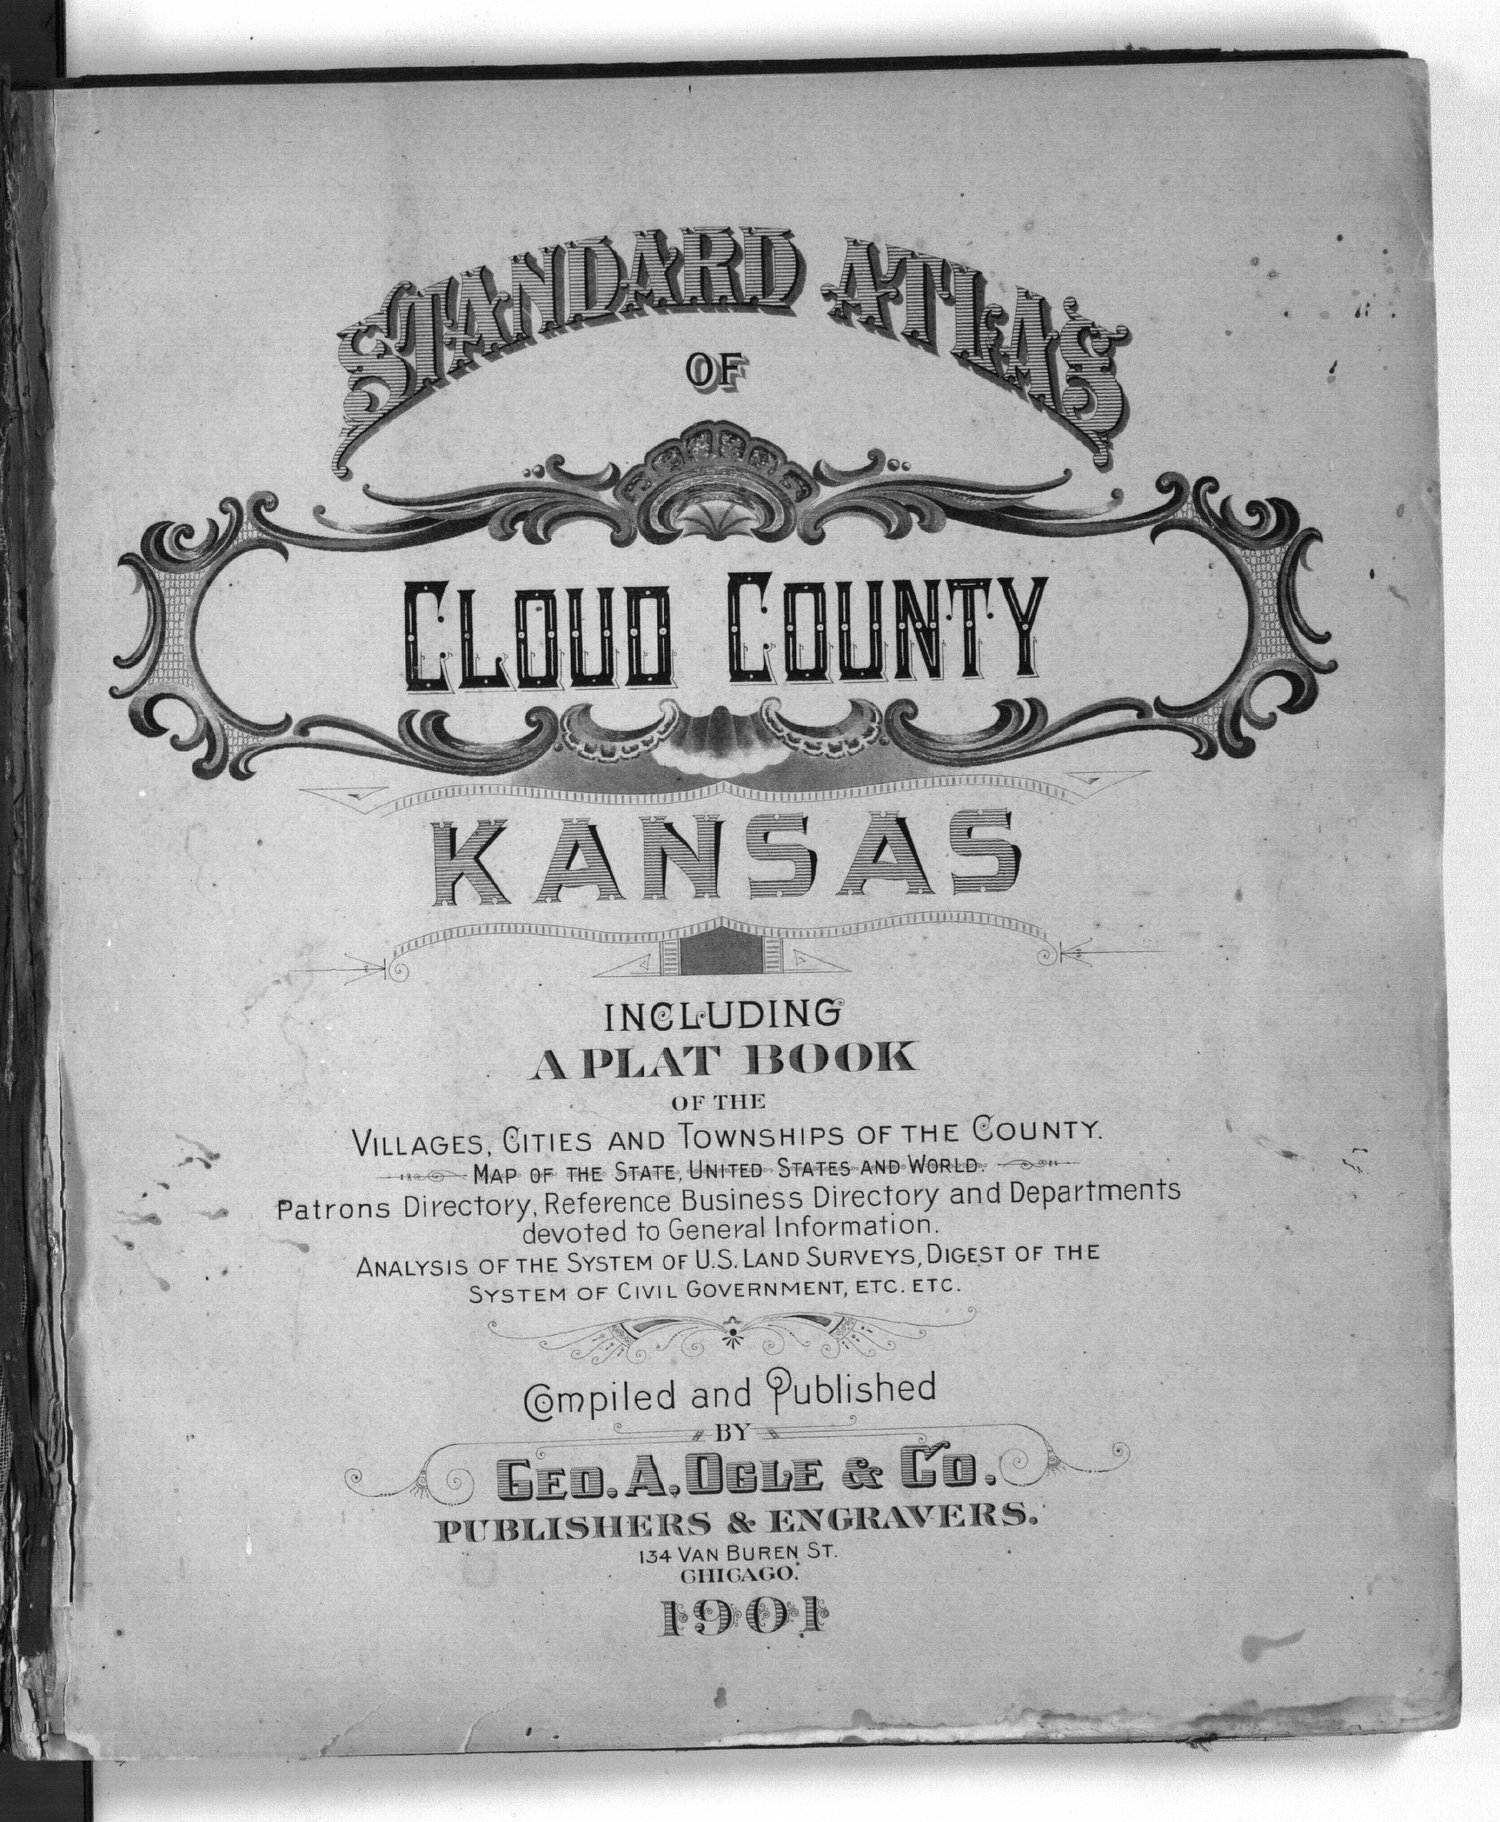 Standard atlas of Cloud County, Kansas - Title Page